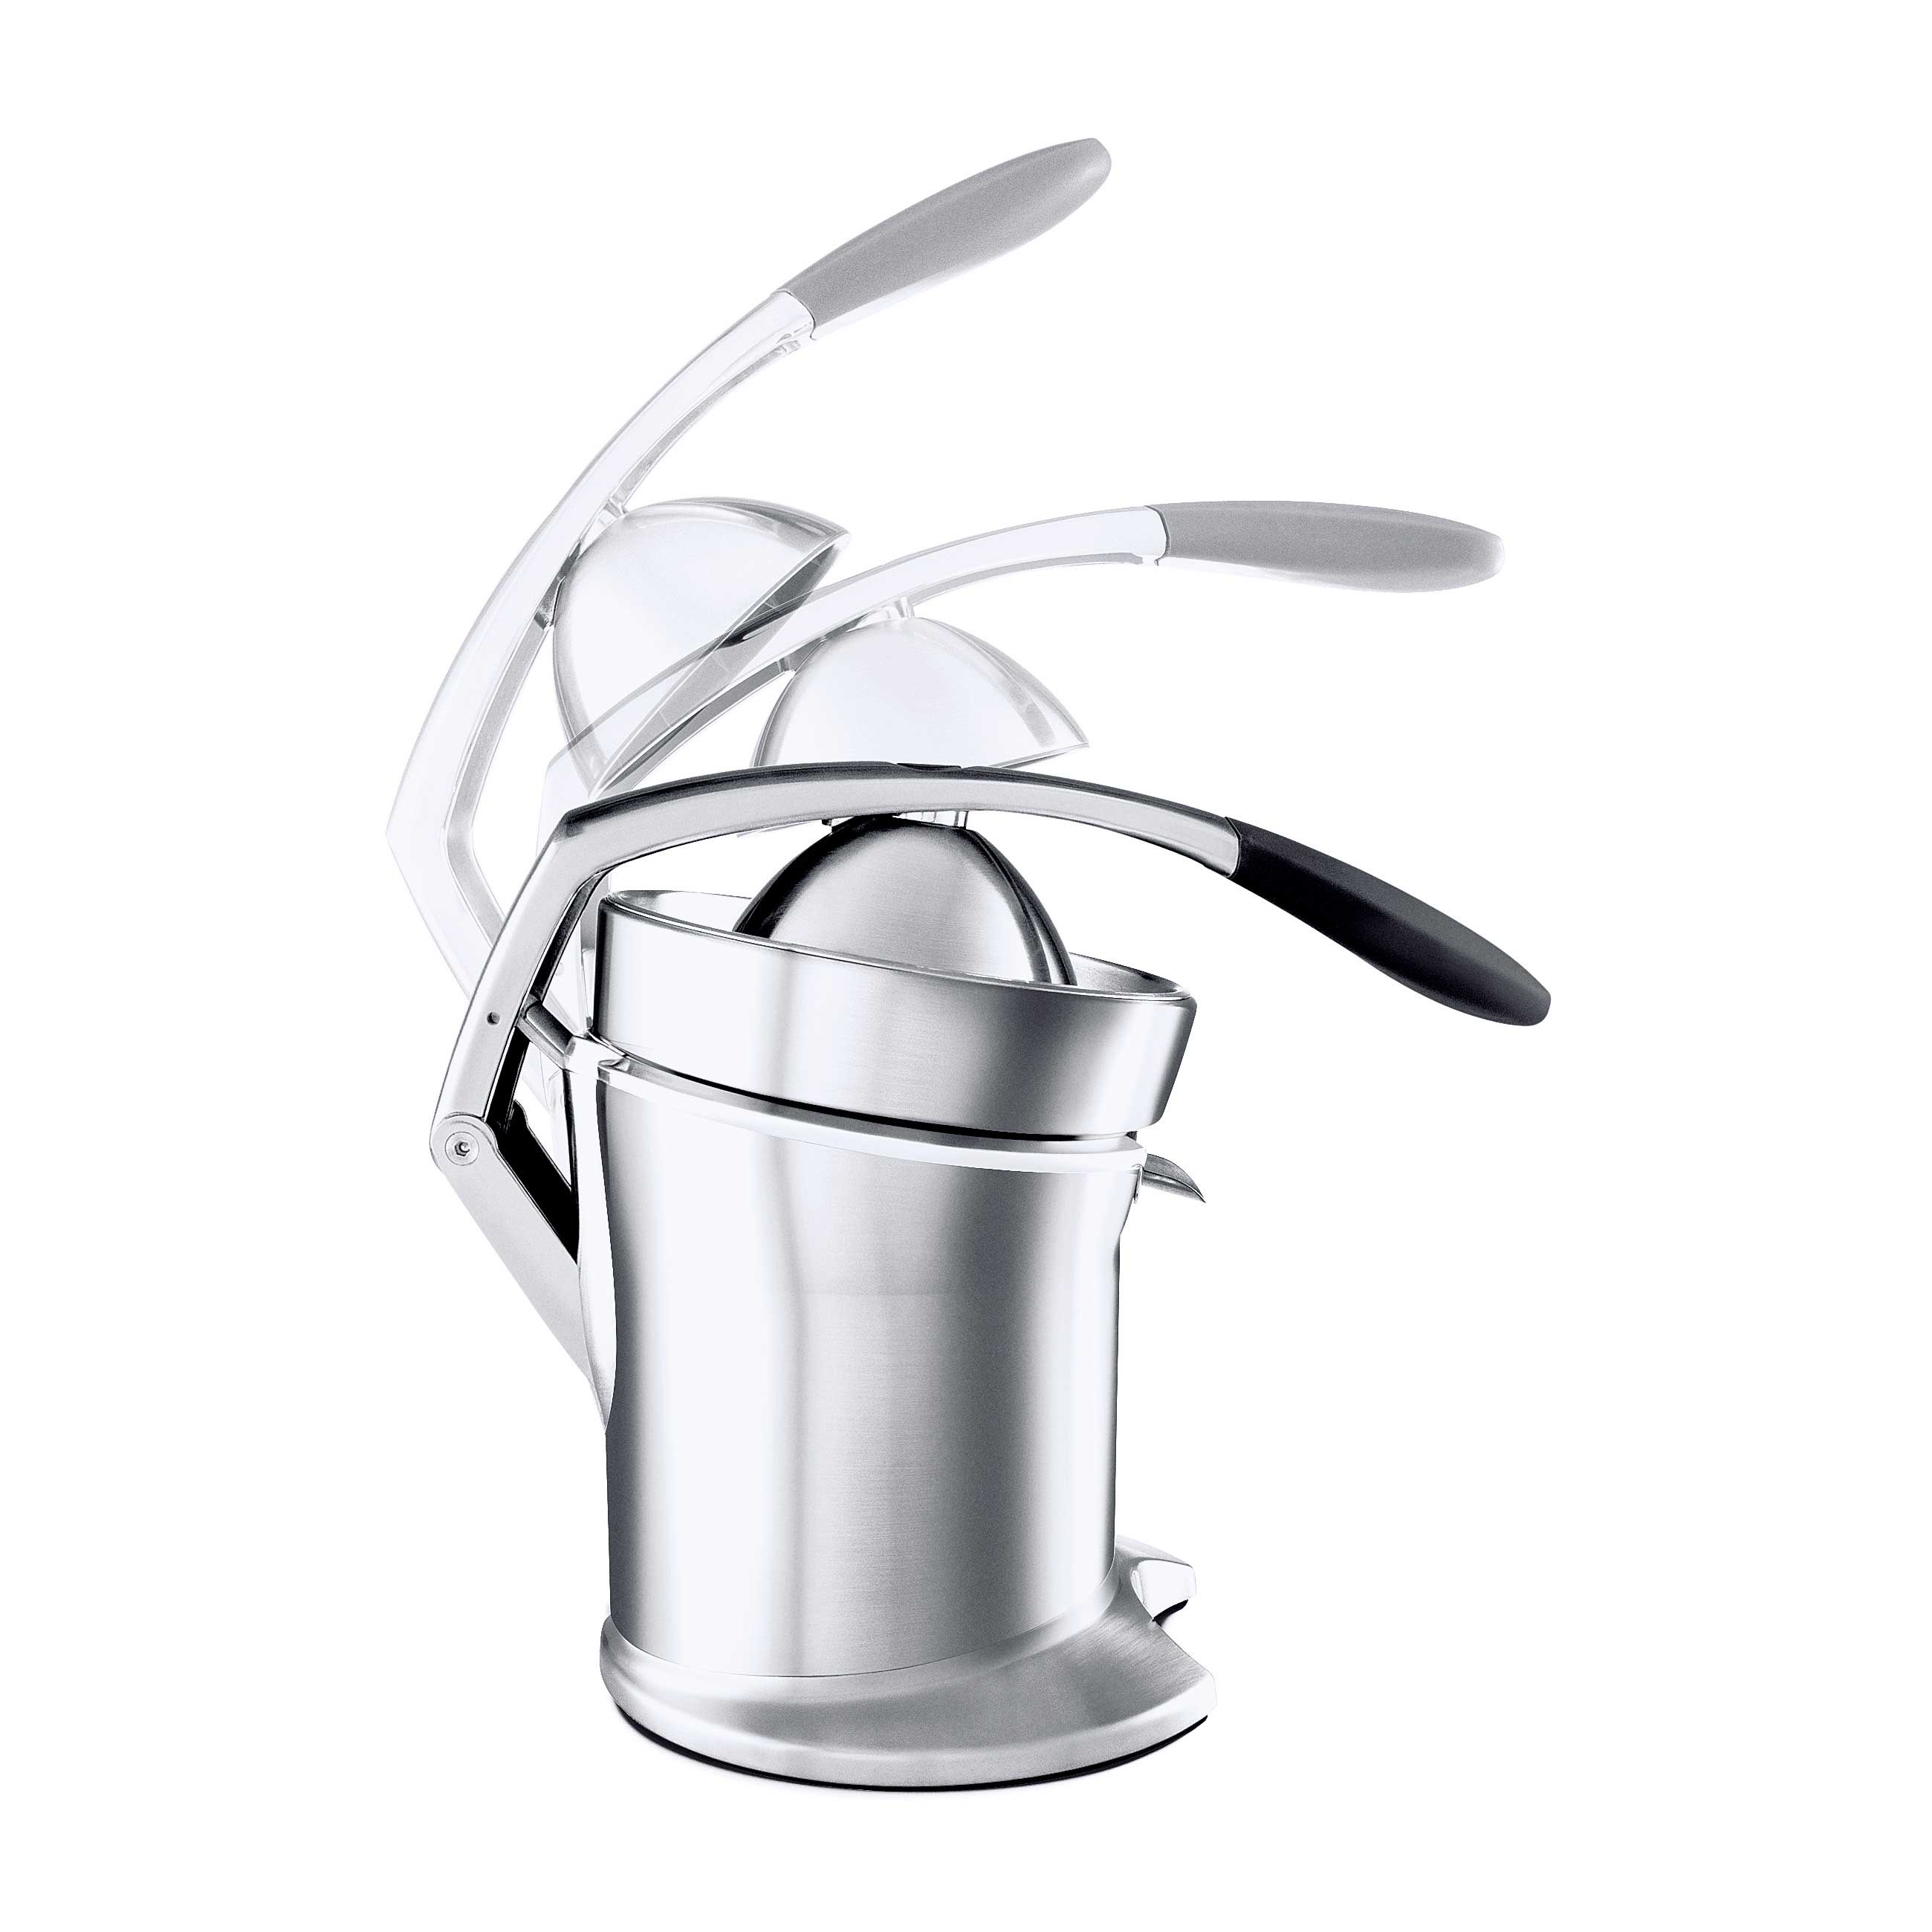 the Citrus Press™ Pro Juicers in Silver juice press arm with dual-switch